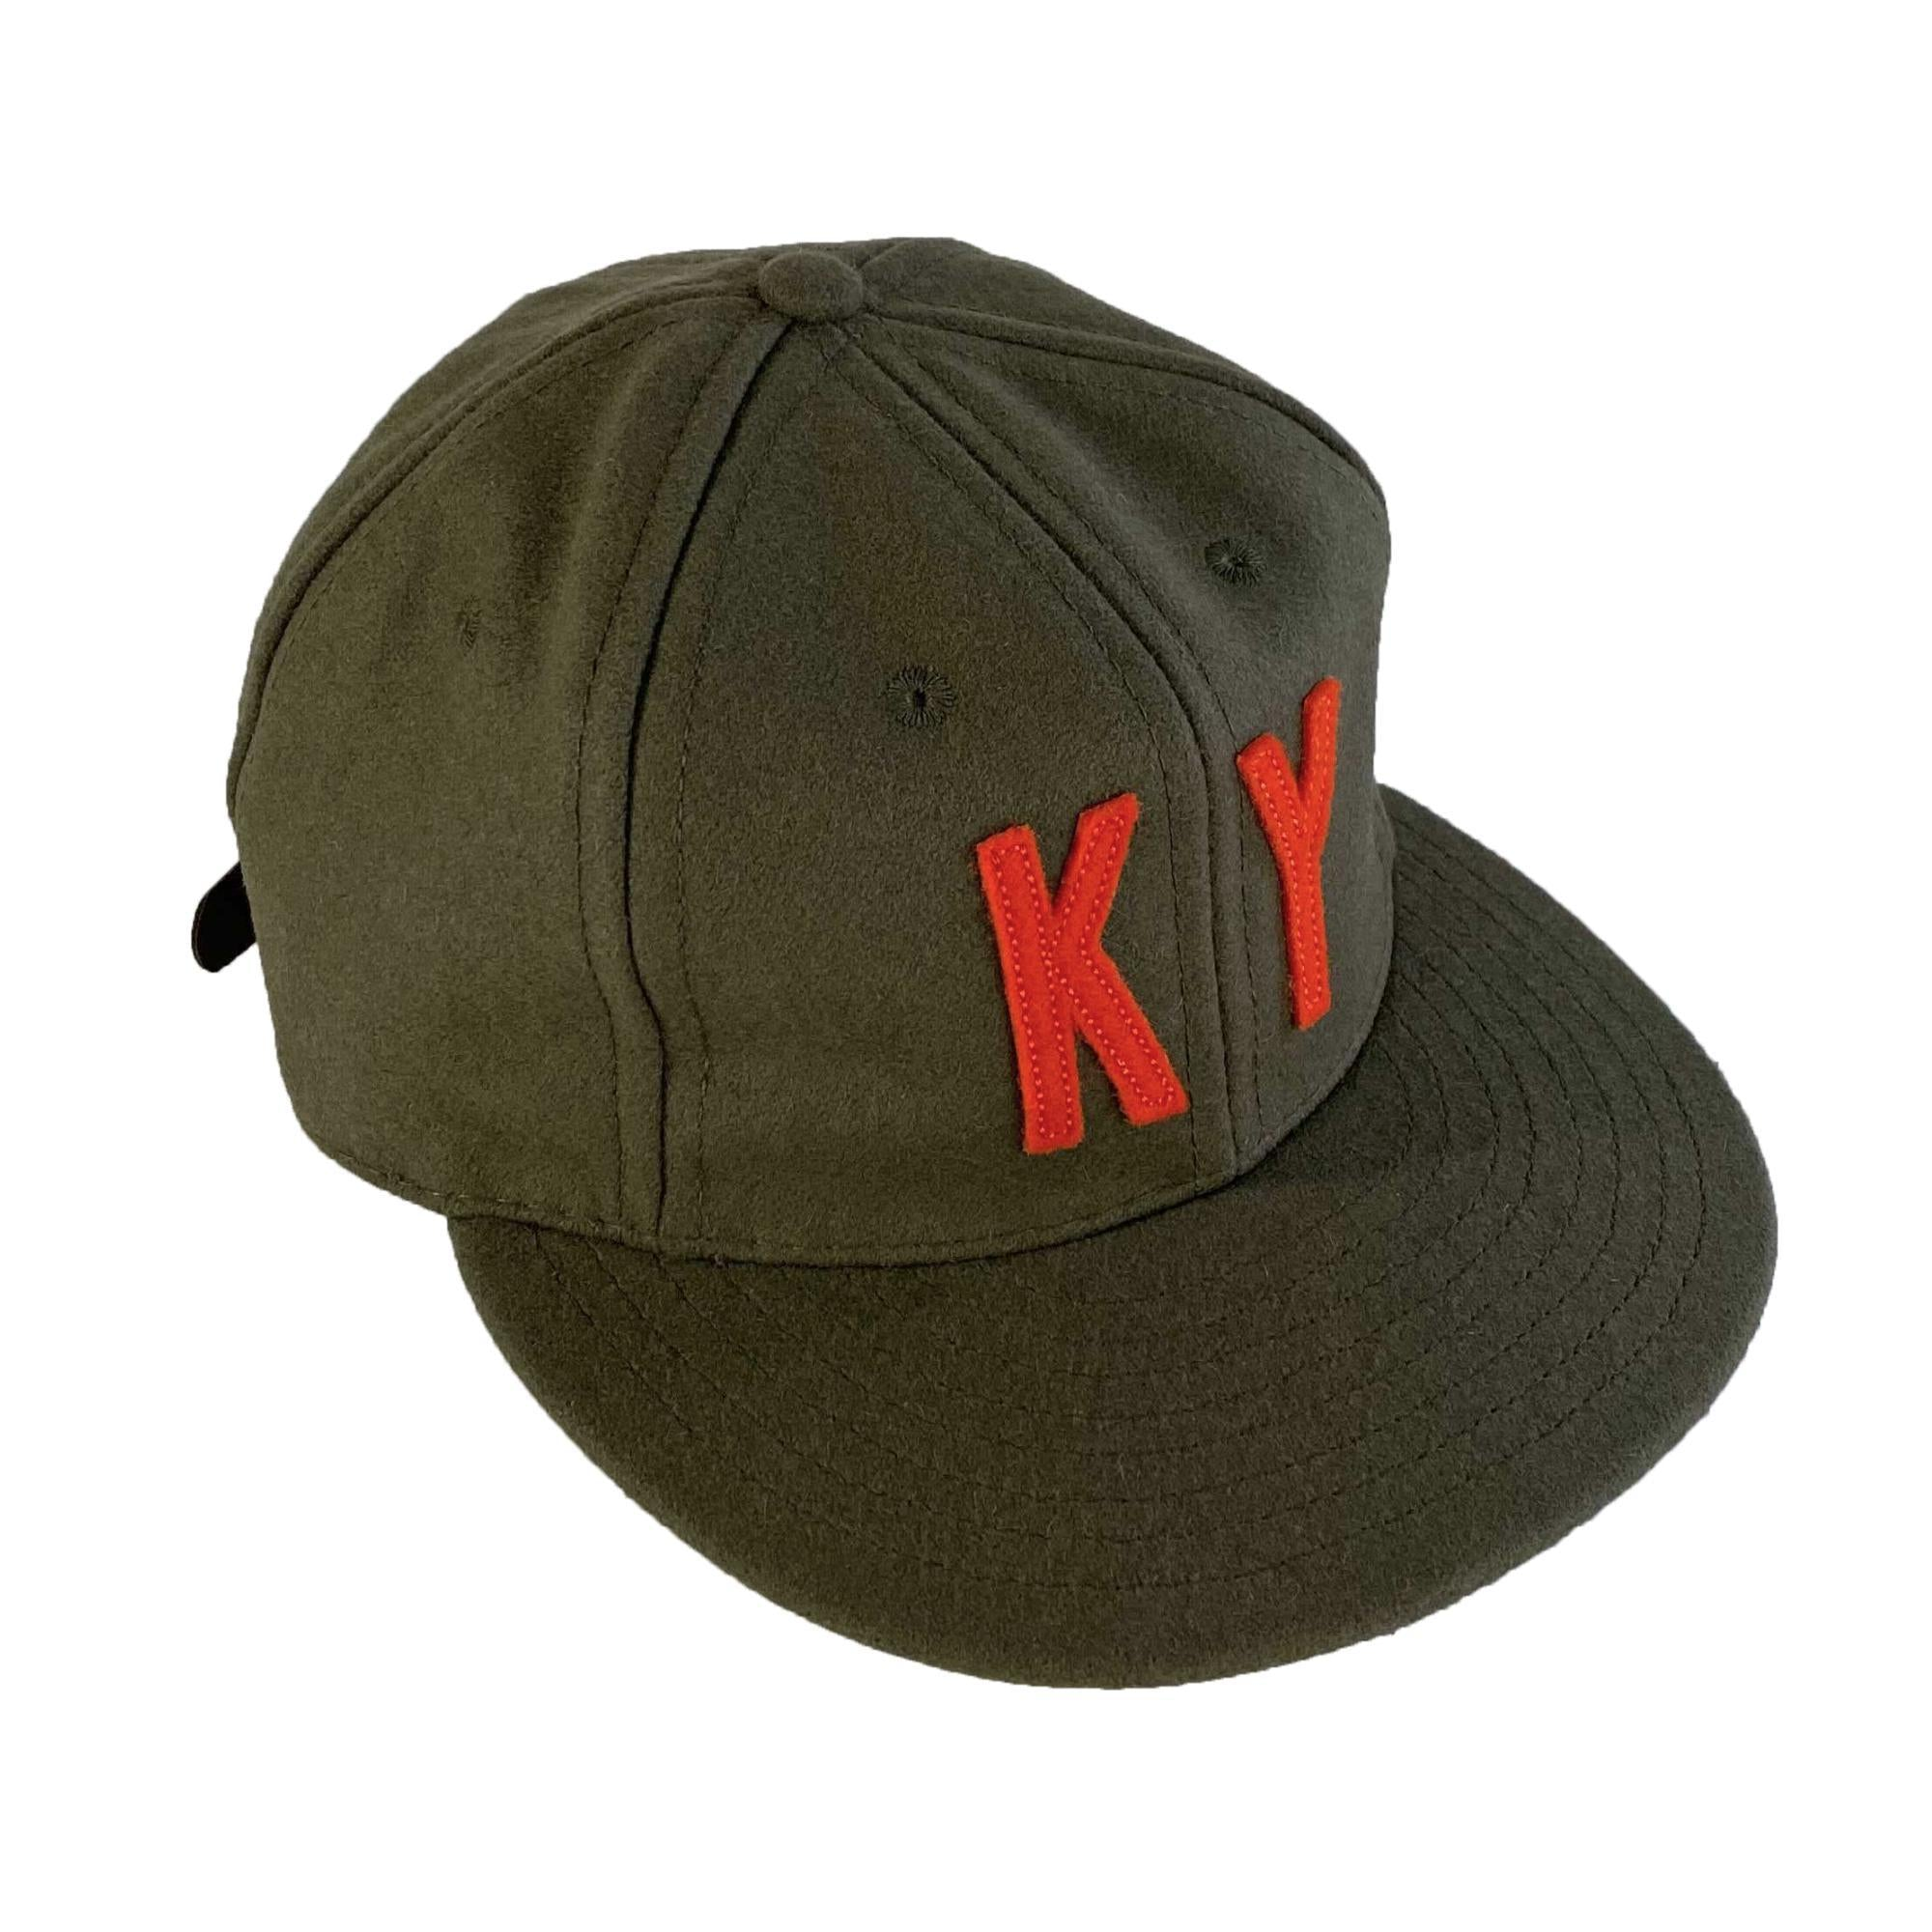 KY Ebbets Hat (Olive and Orange)-Hat-KY for KY Store